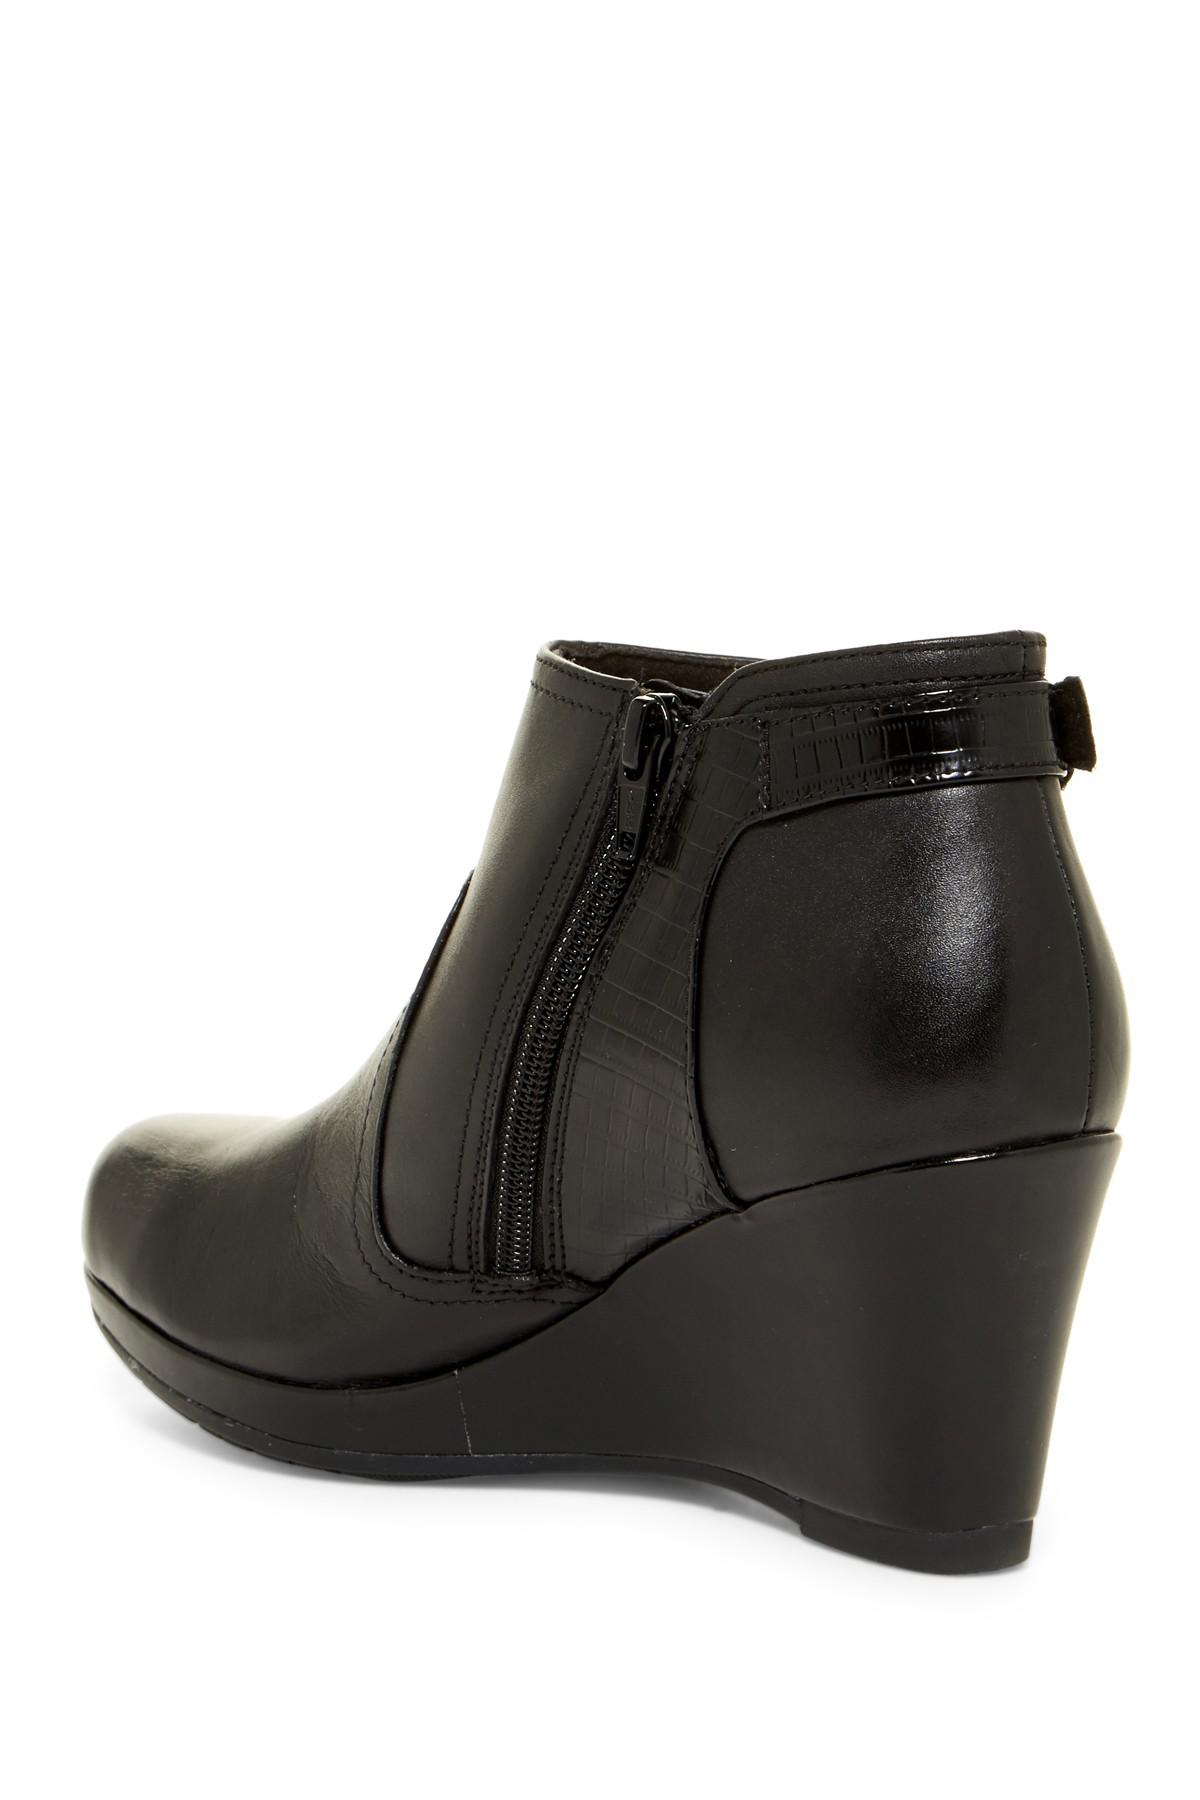 ad29822622a7 Lyst - Clarks Collection Women s Camryn Fiona Wedge Booties in Black